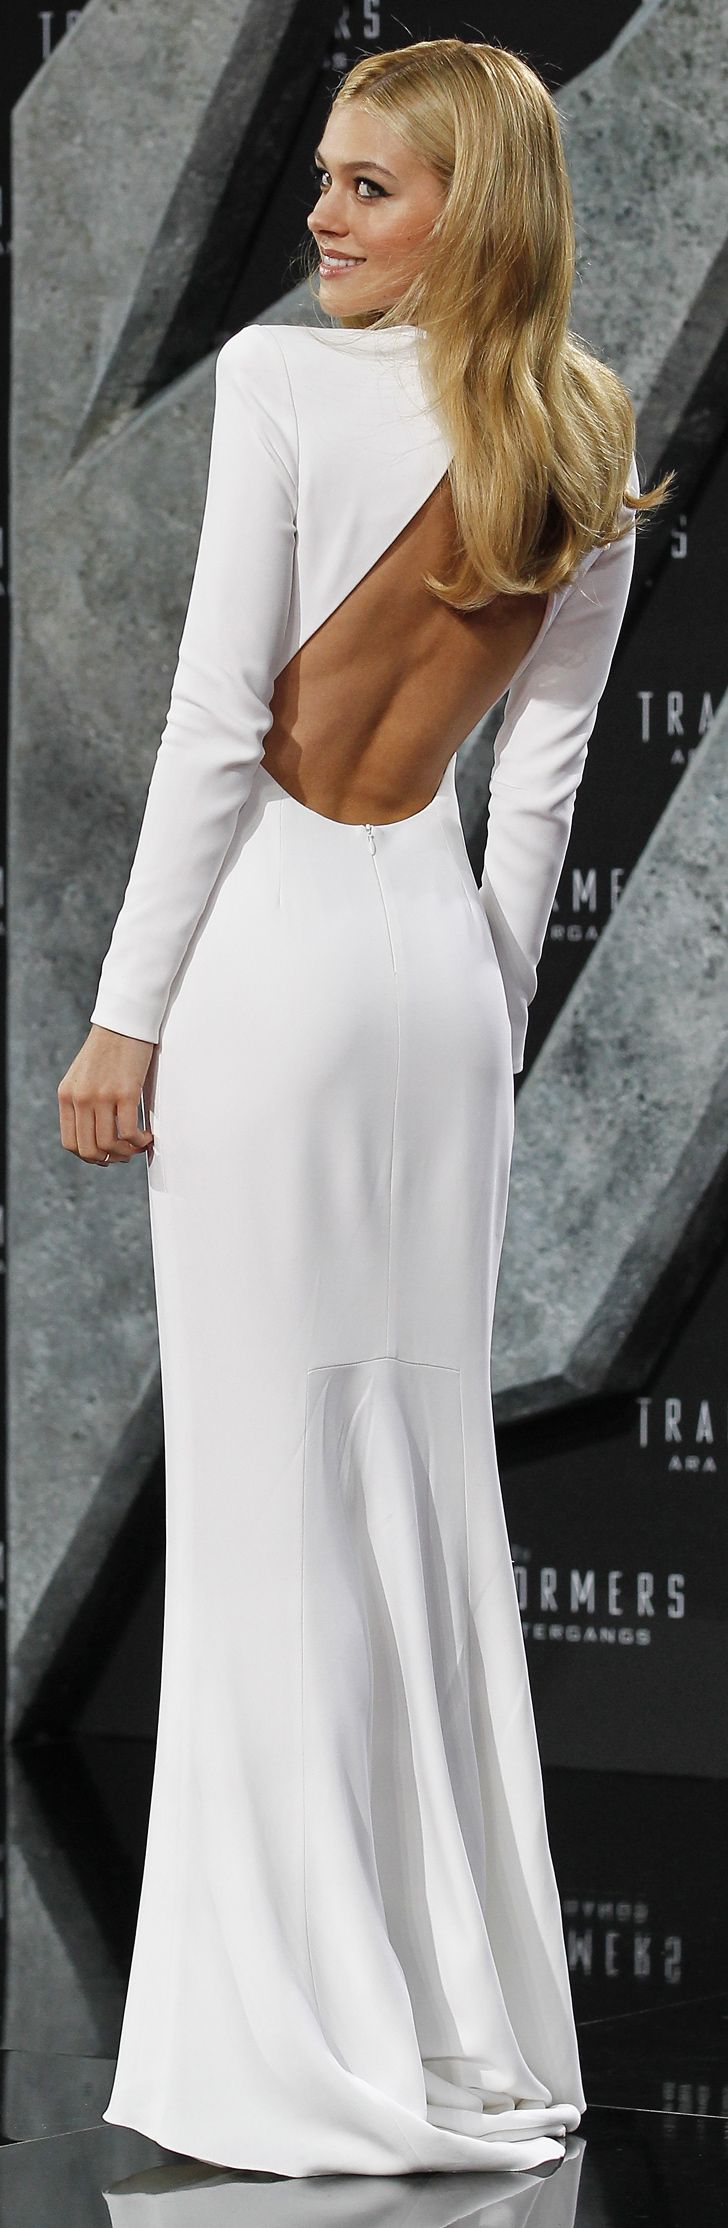 Emmy DE * Nicola Peltz in Stella McCartney at the Berlin premiere of Transformers: Age of Extinction.